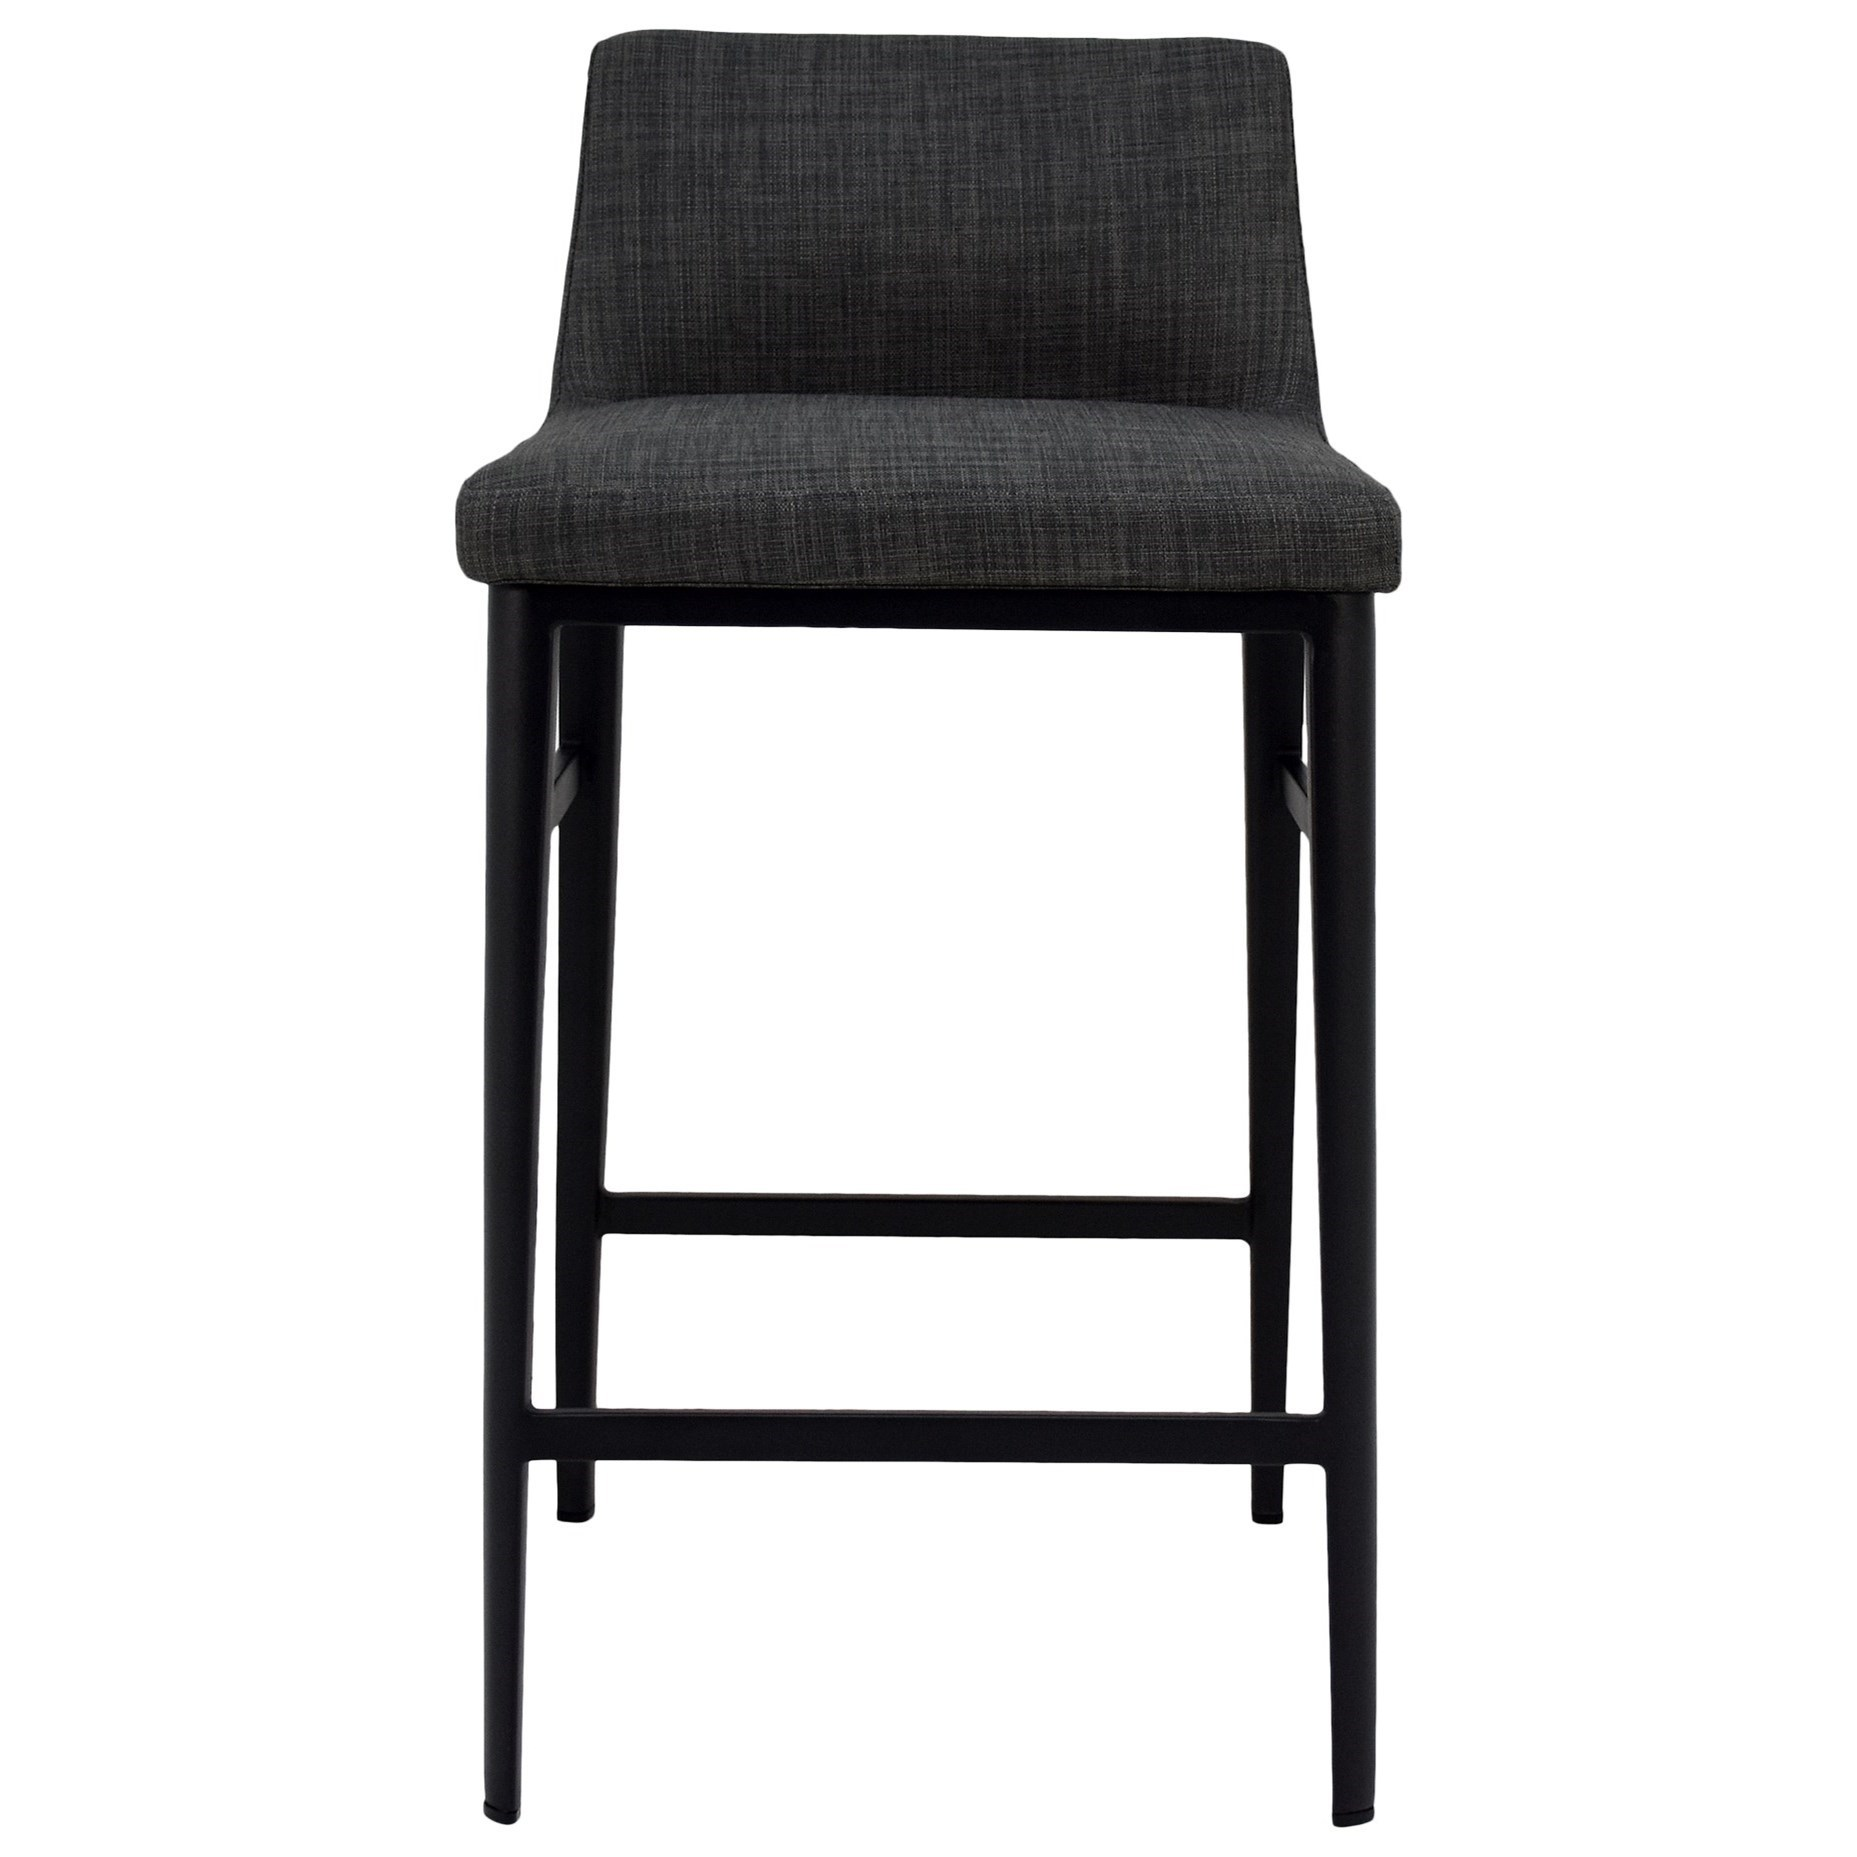 Baron Charcoal Mid-Century Modern Counter Stool at Sadler's Home Furnishings